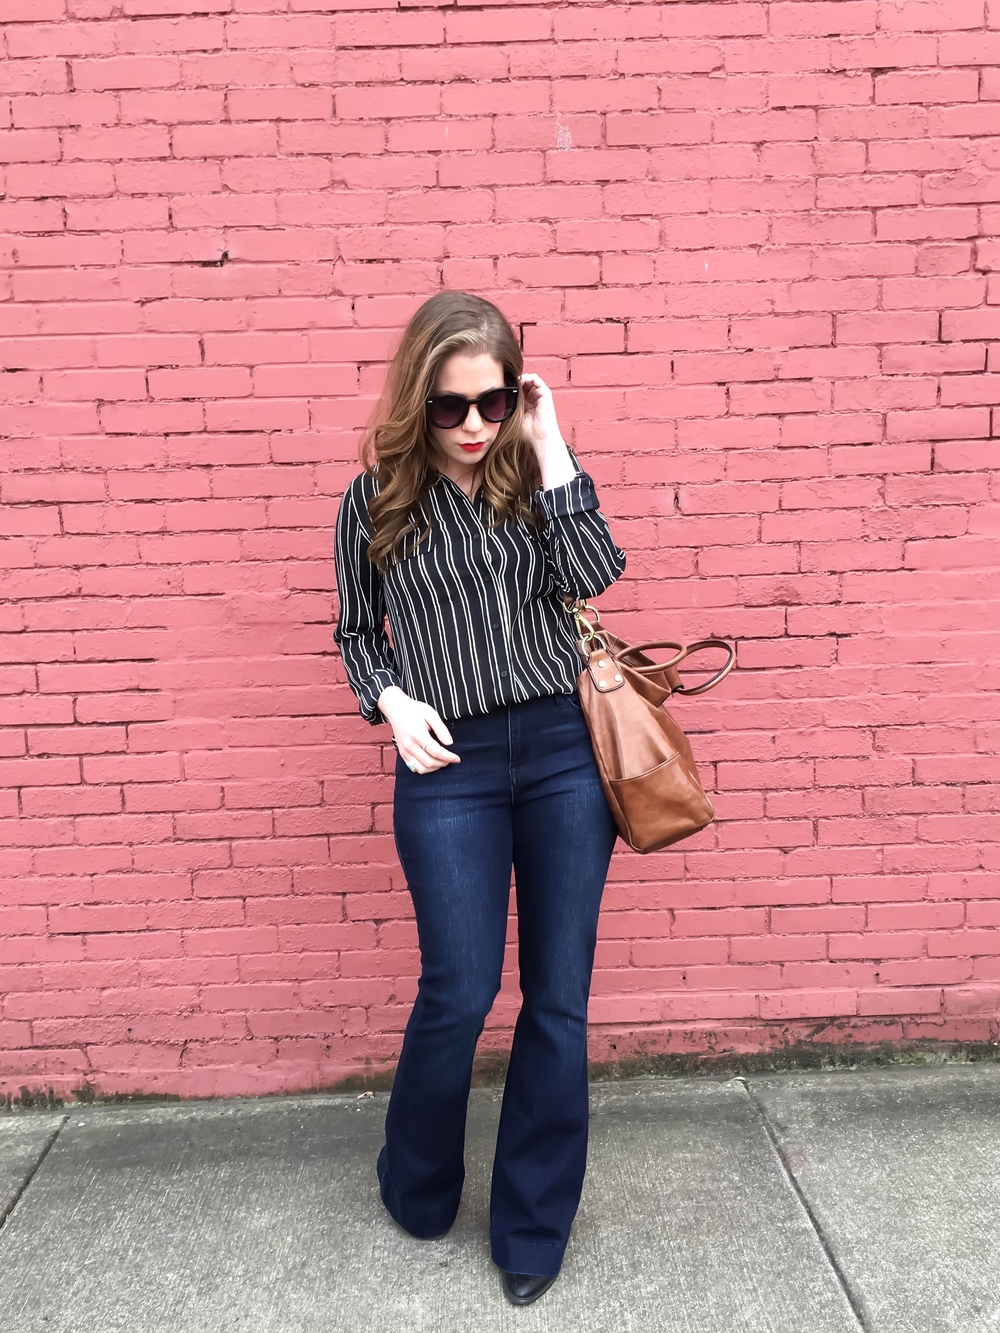 stylish_denim_bellbottoms